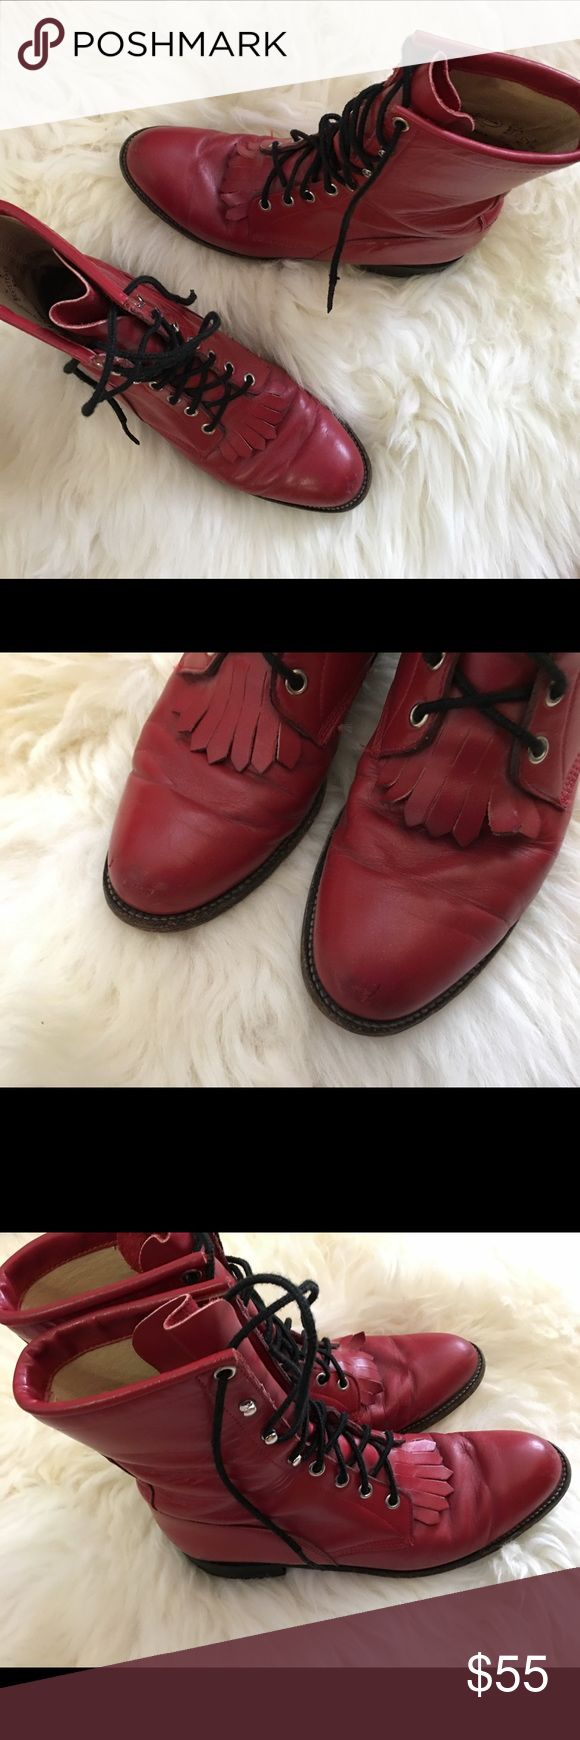 Justin roper boots Red Justin roper boots.  Used but still lots of life left!!!  Genuine leather.  Size 8.5. Justin Boots Shoes Lace Up Boots